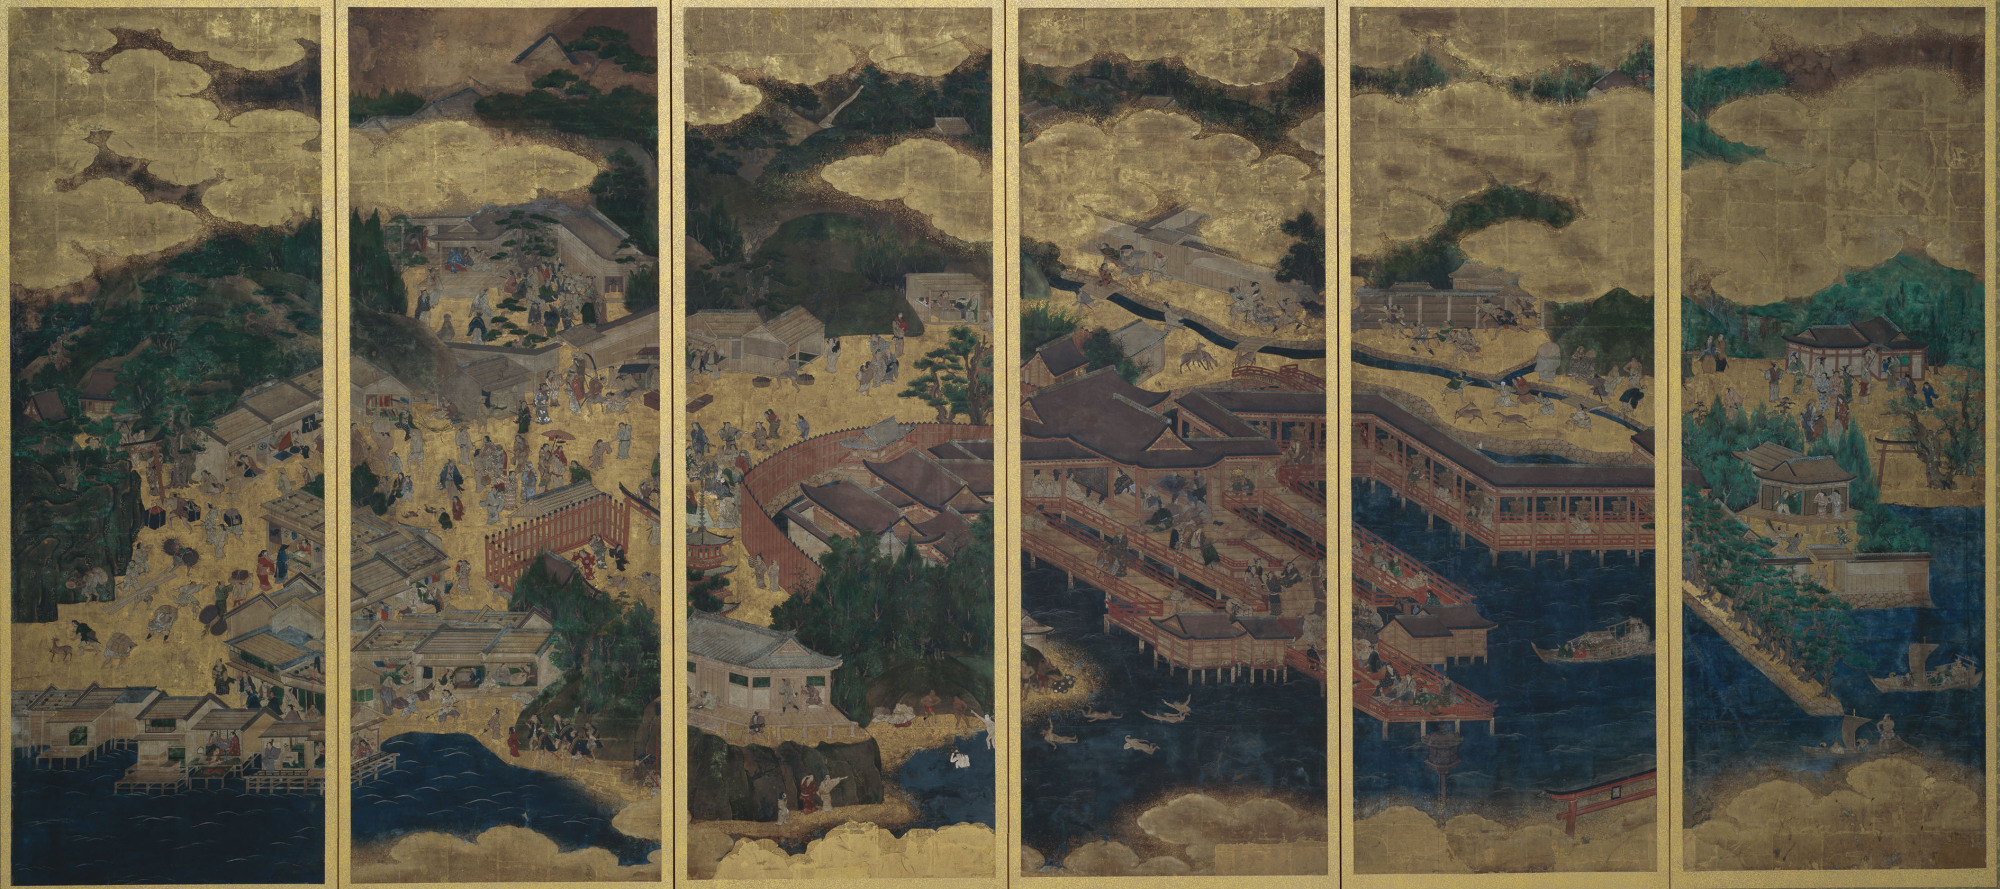 'Itsukushima' (left screen of Yoshino Itsukushima) from a pair of six fold screens (17th century) | UMI-MORI ART MUSEUM